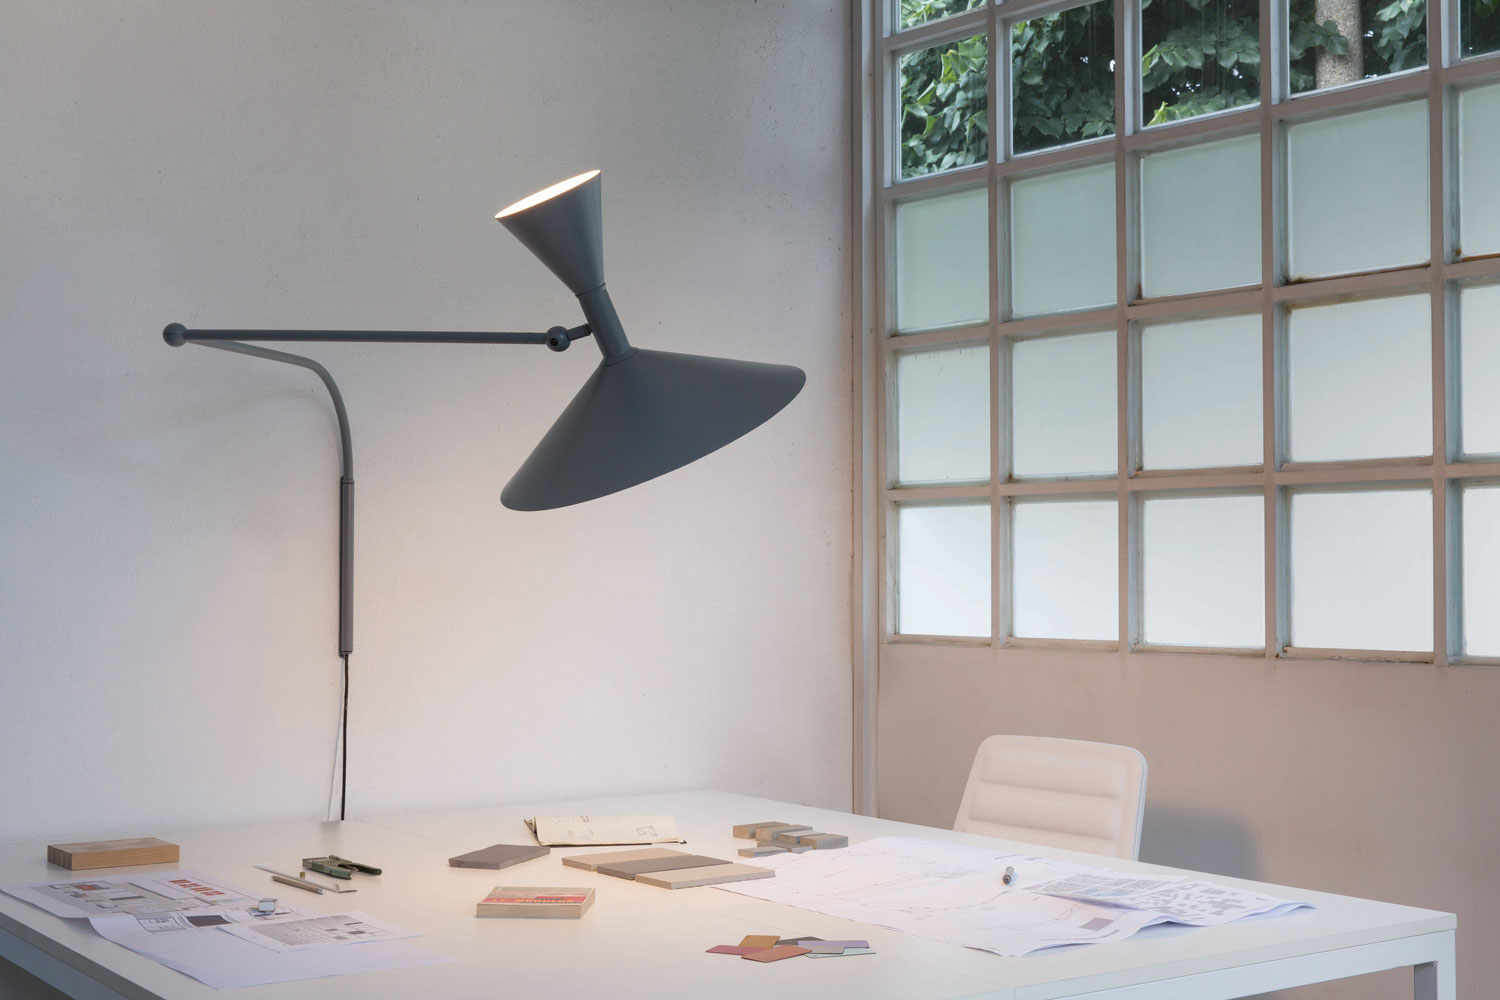 Studio Italia Le Corbusier Collection, Nemo Lighting | Yellowtrace